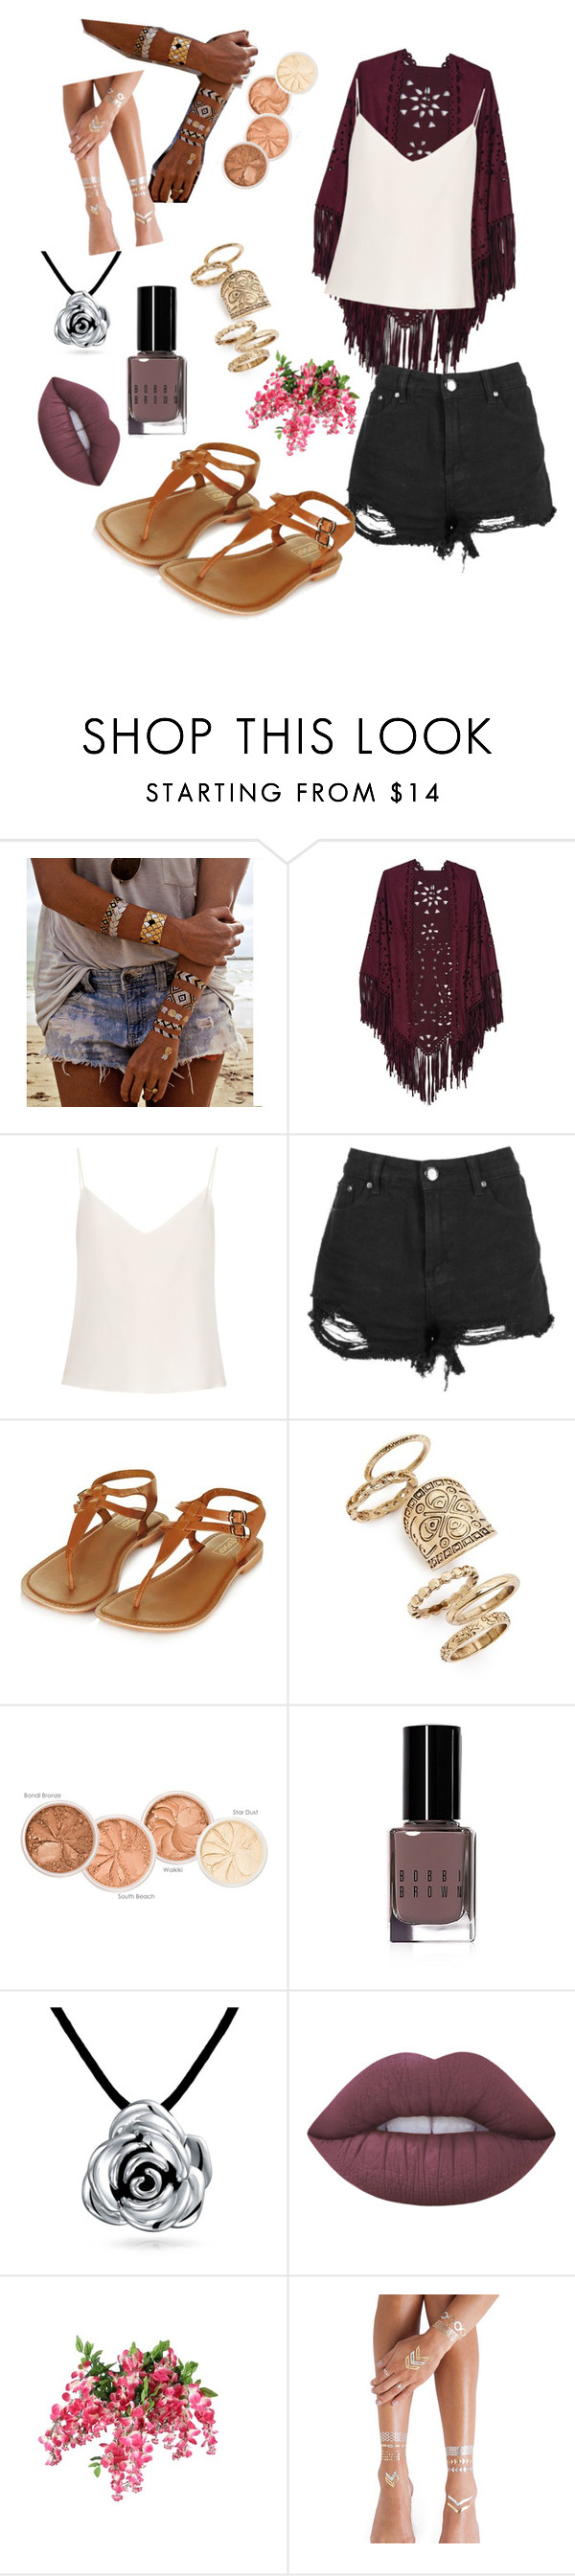 """""""Untitled #515"""" by nikkey23 ❤ liked on Polyvore featuring Flash Tattoos, Raey, Topshop, Bobbi Brown Cosmetics, Bling Jewelry, Lime Crime and temporarytattoo"""